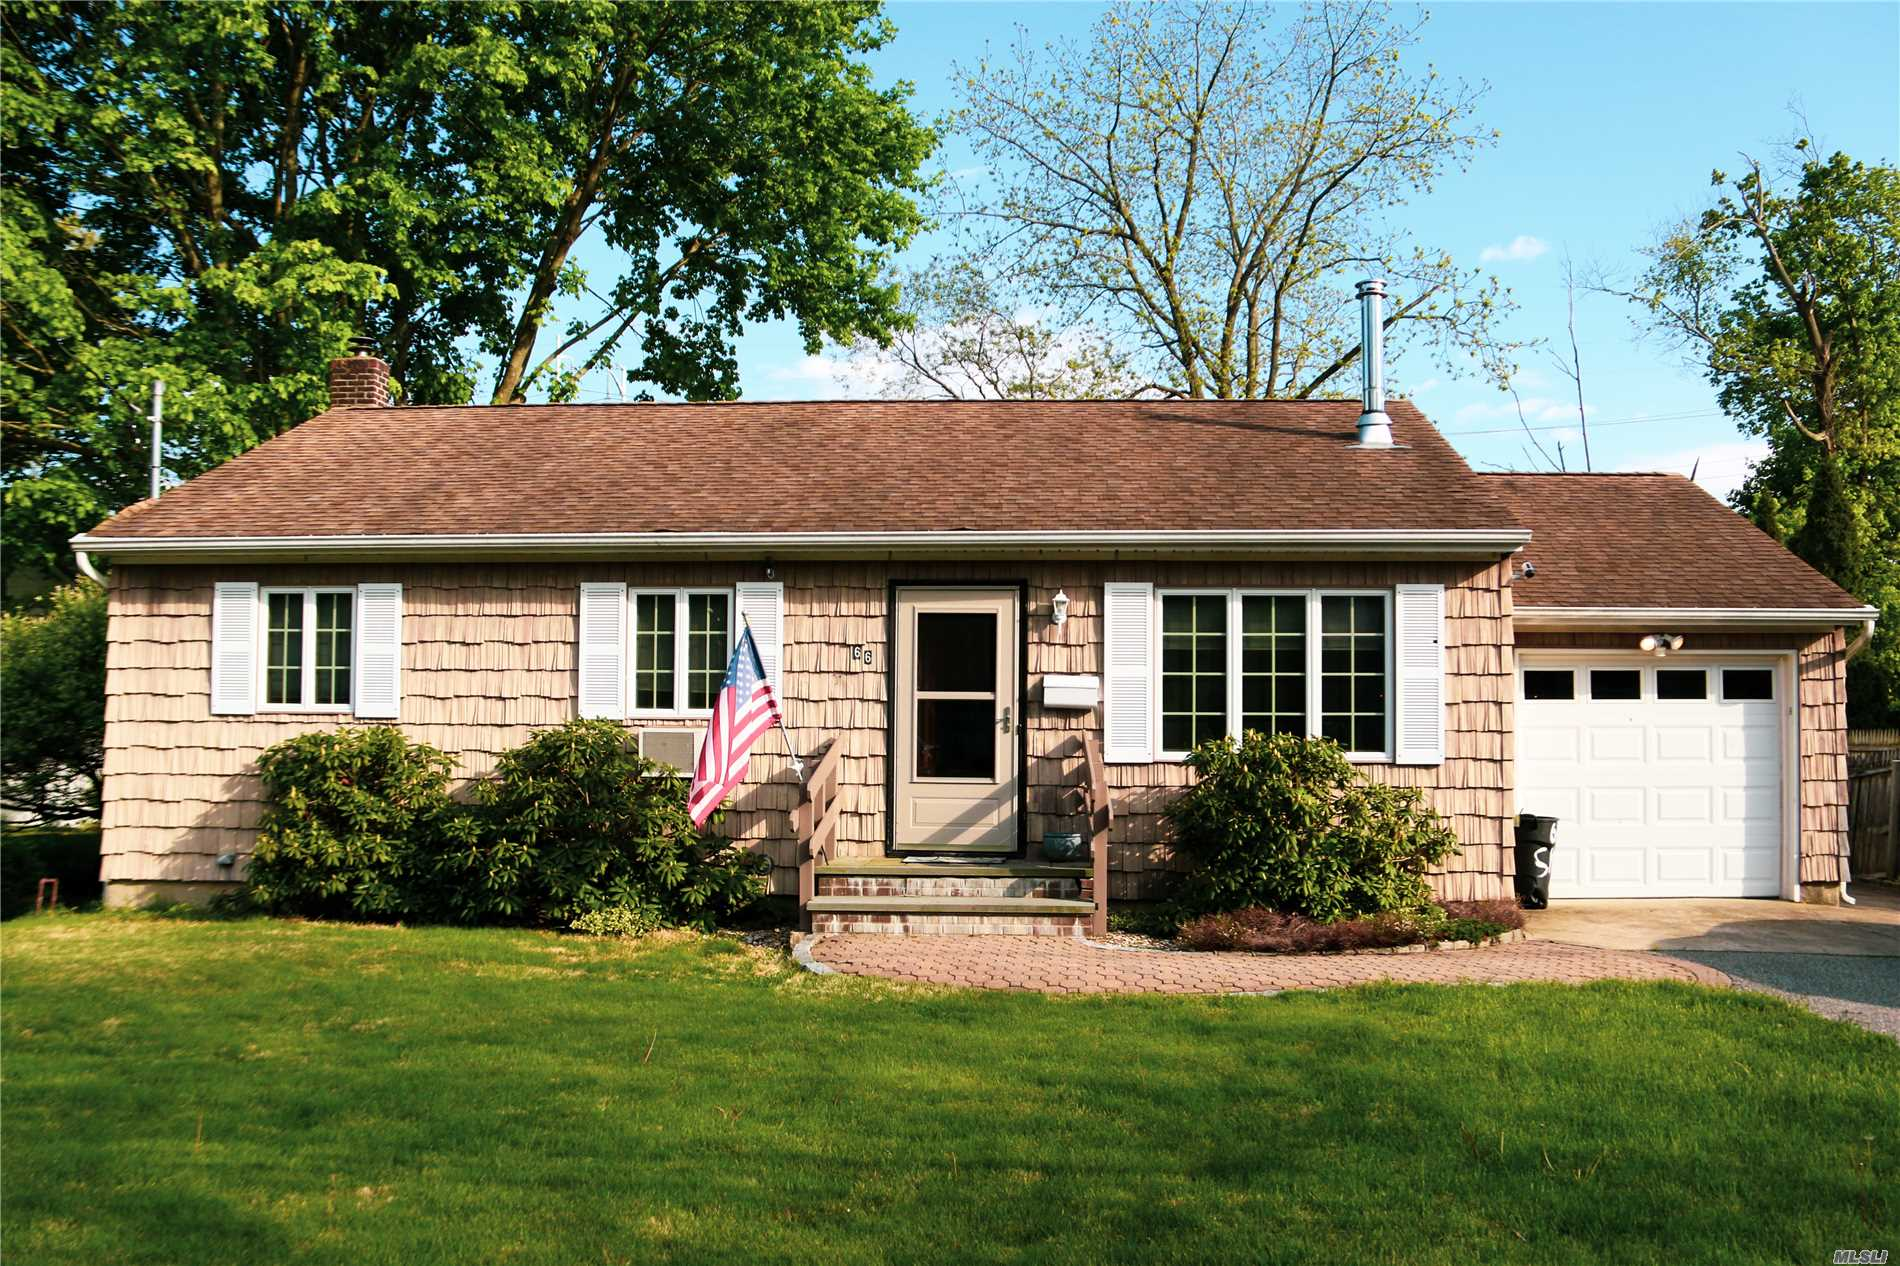 Rare Opportunity For Dog Owner Or Temporary Rental. Spacious Ranch Home With Fenced In Yard. 2 Small Dogs Up To 25lbs Each Or 1 Dog 50lbs. Month To Month or Available As A Summer Rental. Use Of Driveway, Space For Entertaining On Deck. Harborfields School District.